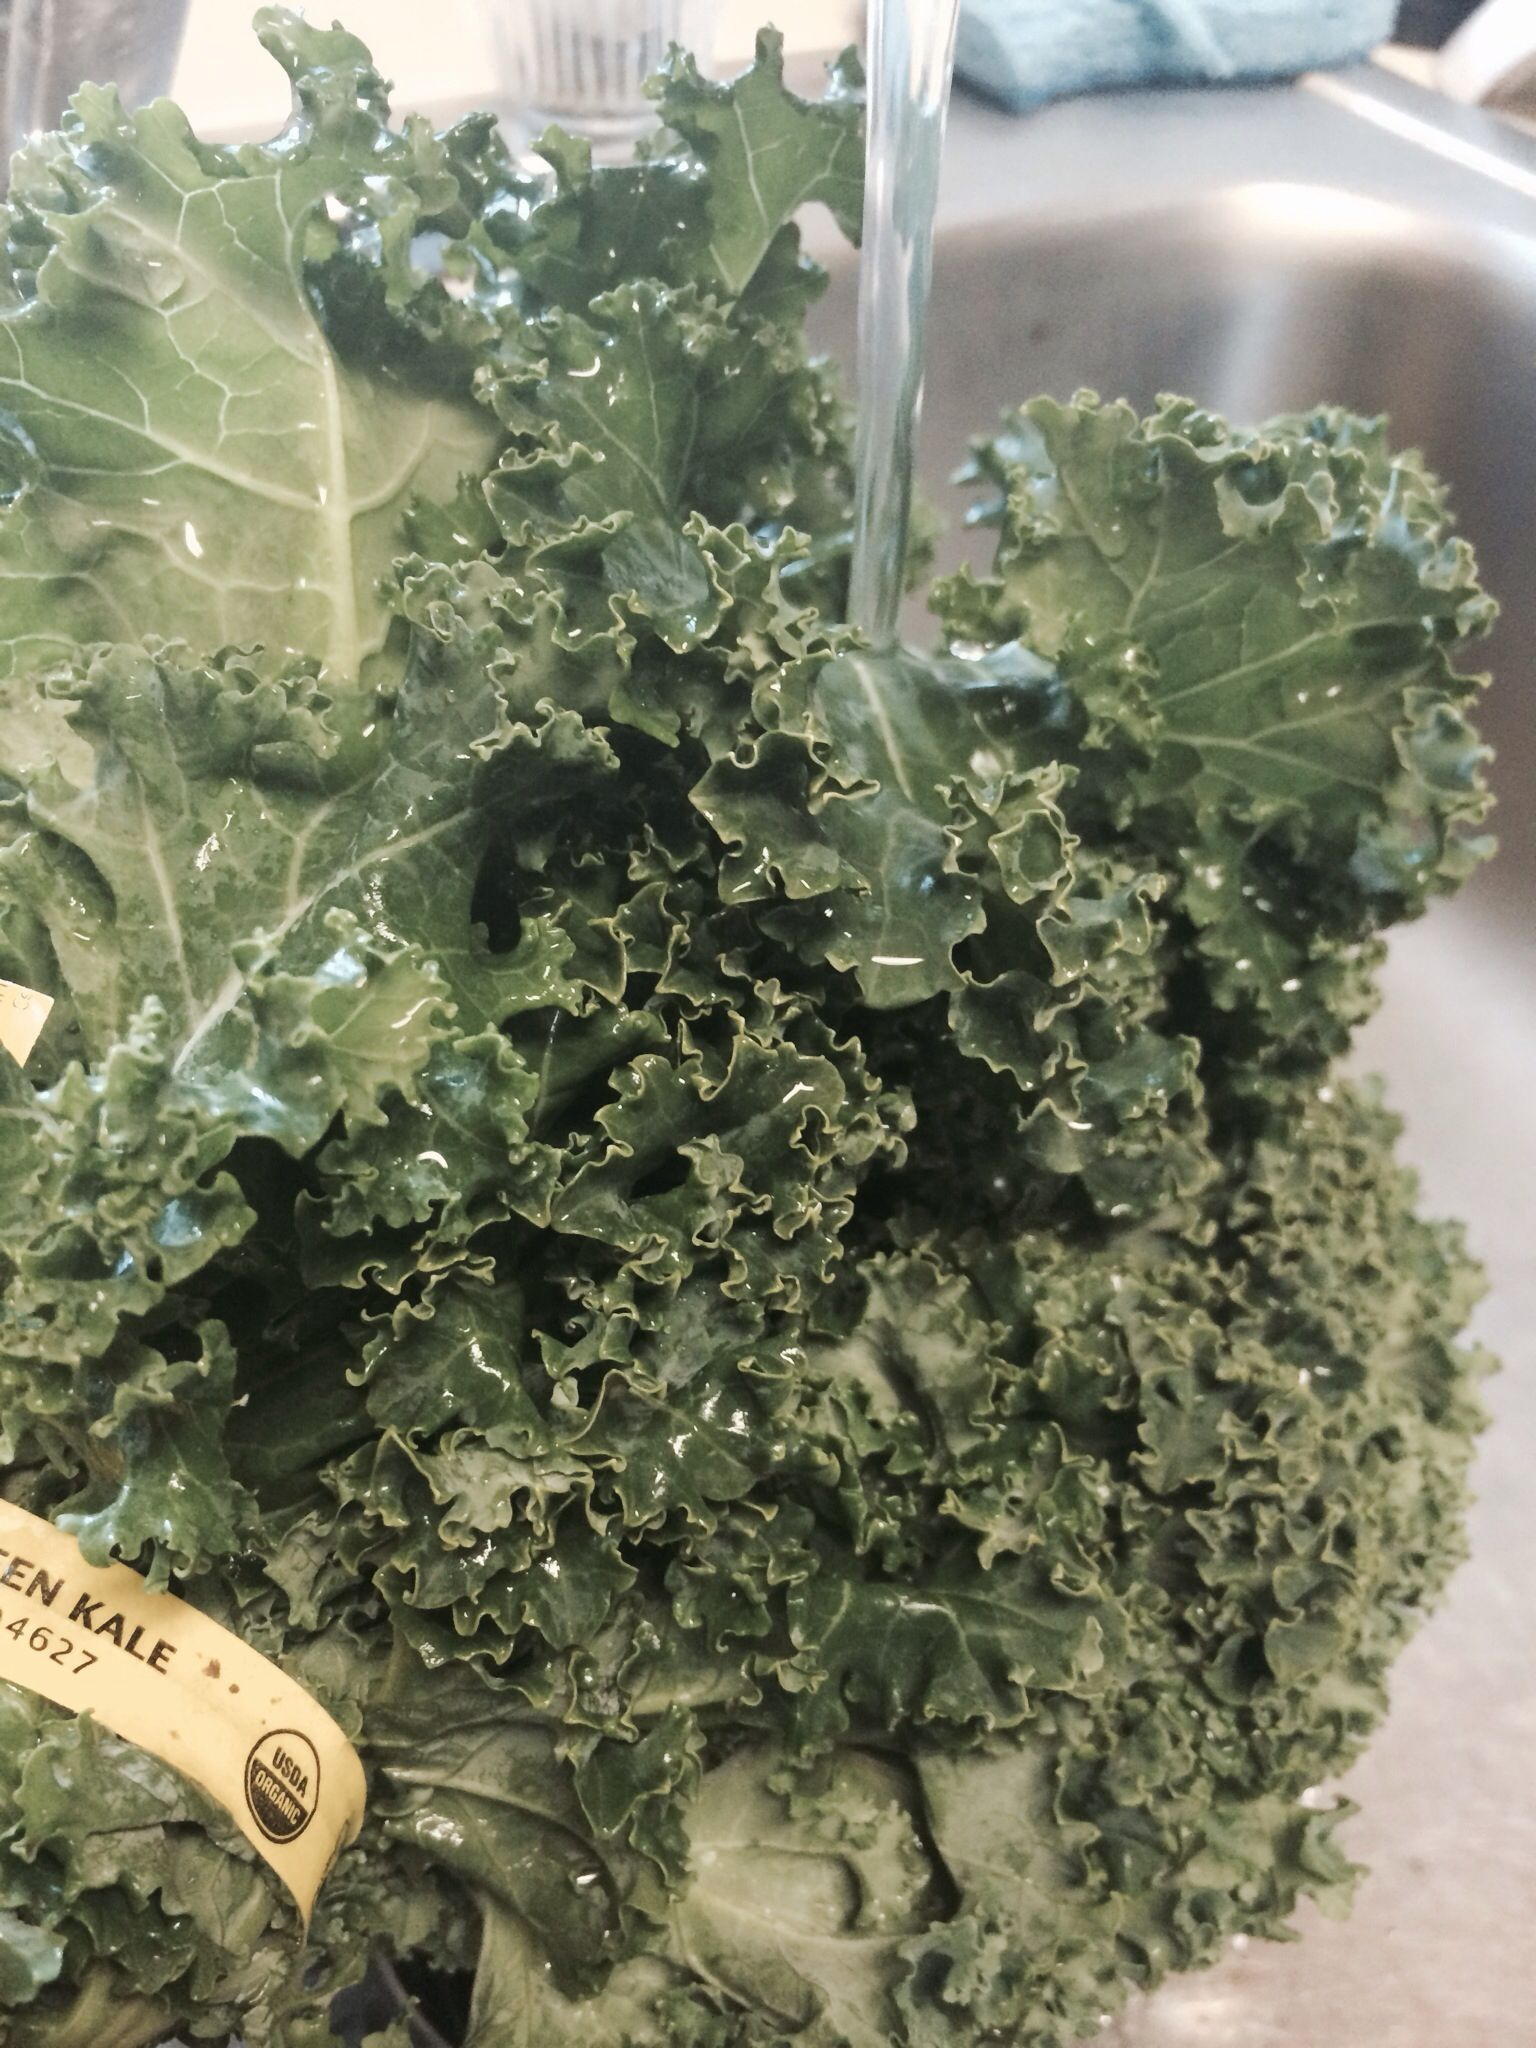 What to do with excess kale